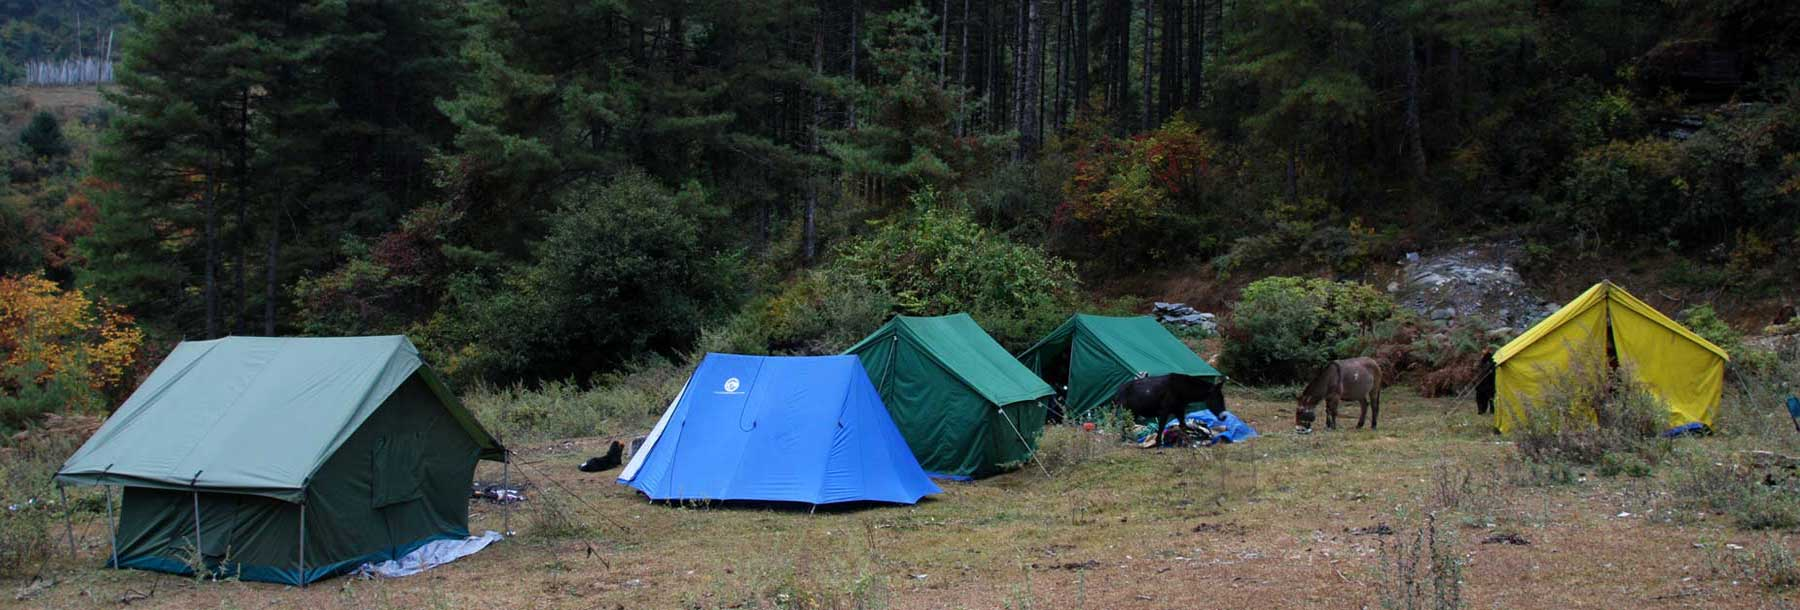 The last campsite of Druk Path Trek at an elevation of 3,750 meters above Thimphu